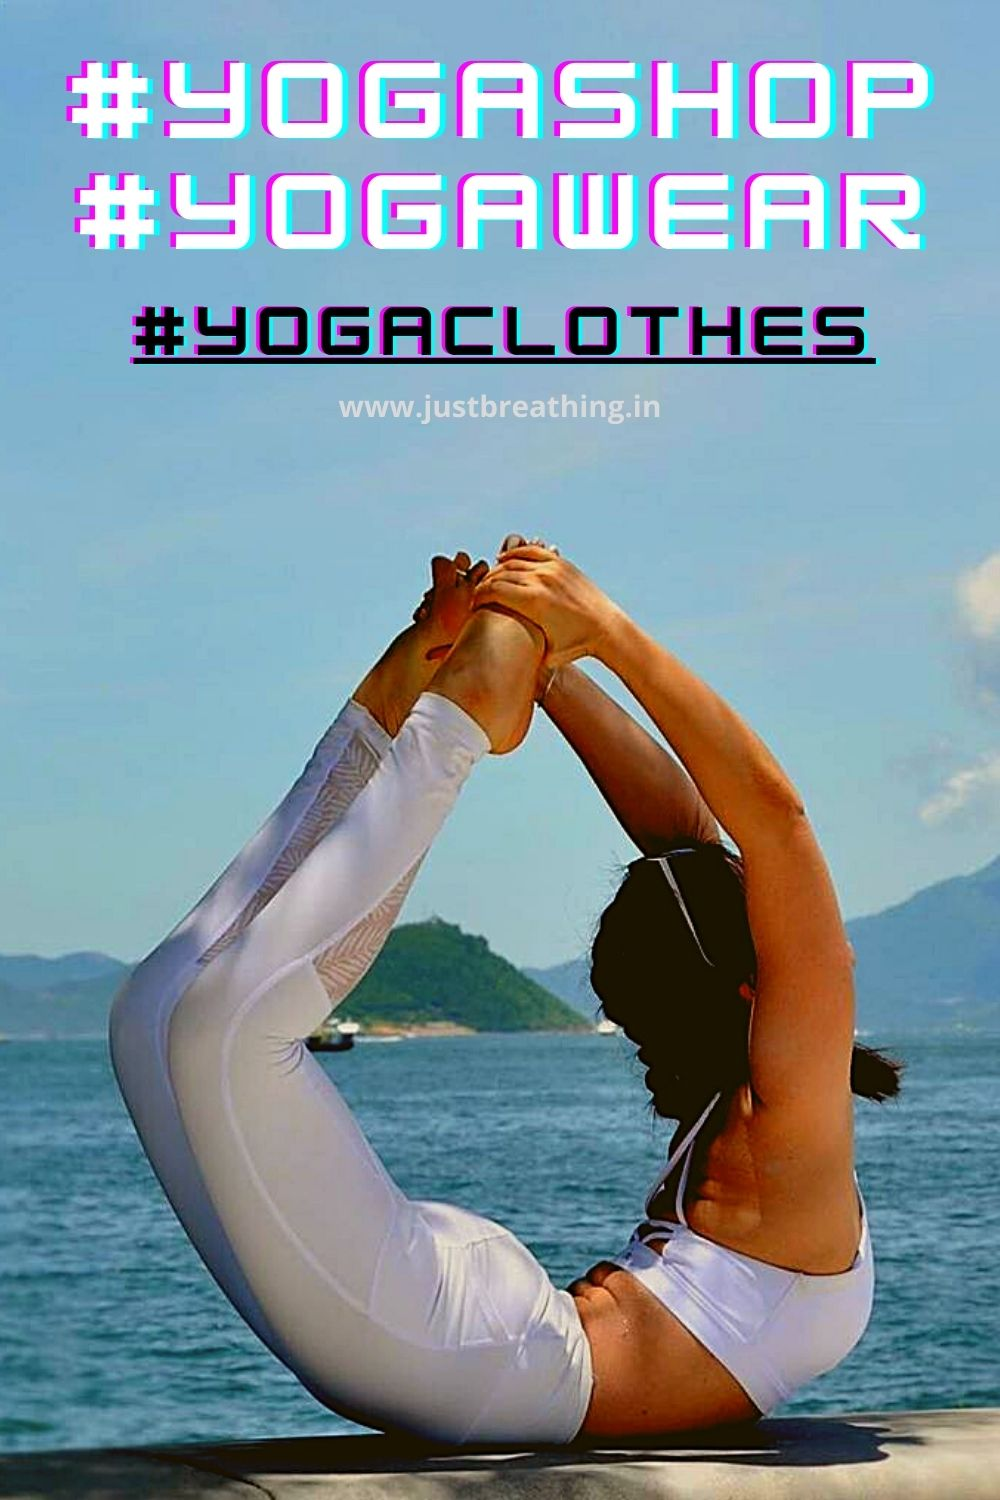 Best hashtags of yoga shop and yoga clothes - yoga ware hashtags for yoga Instagram business.